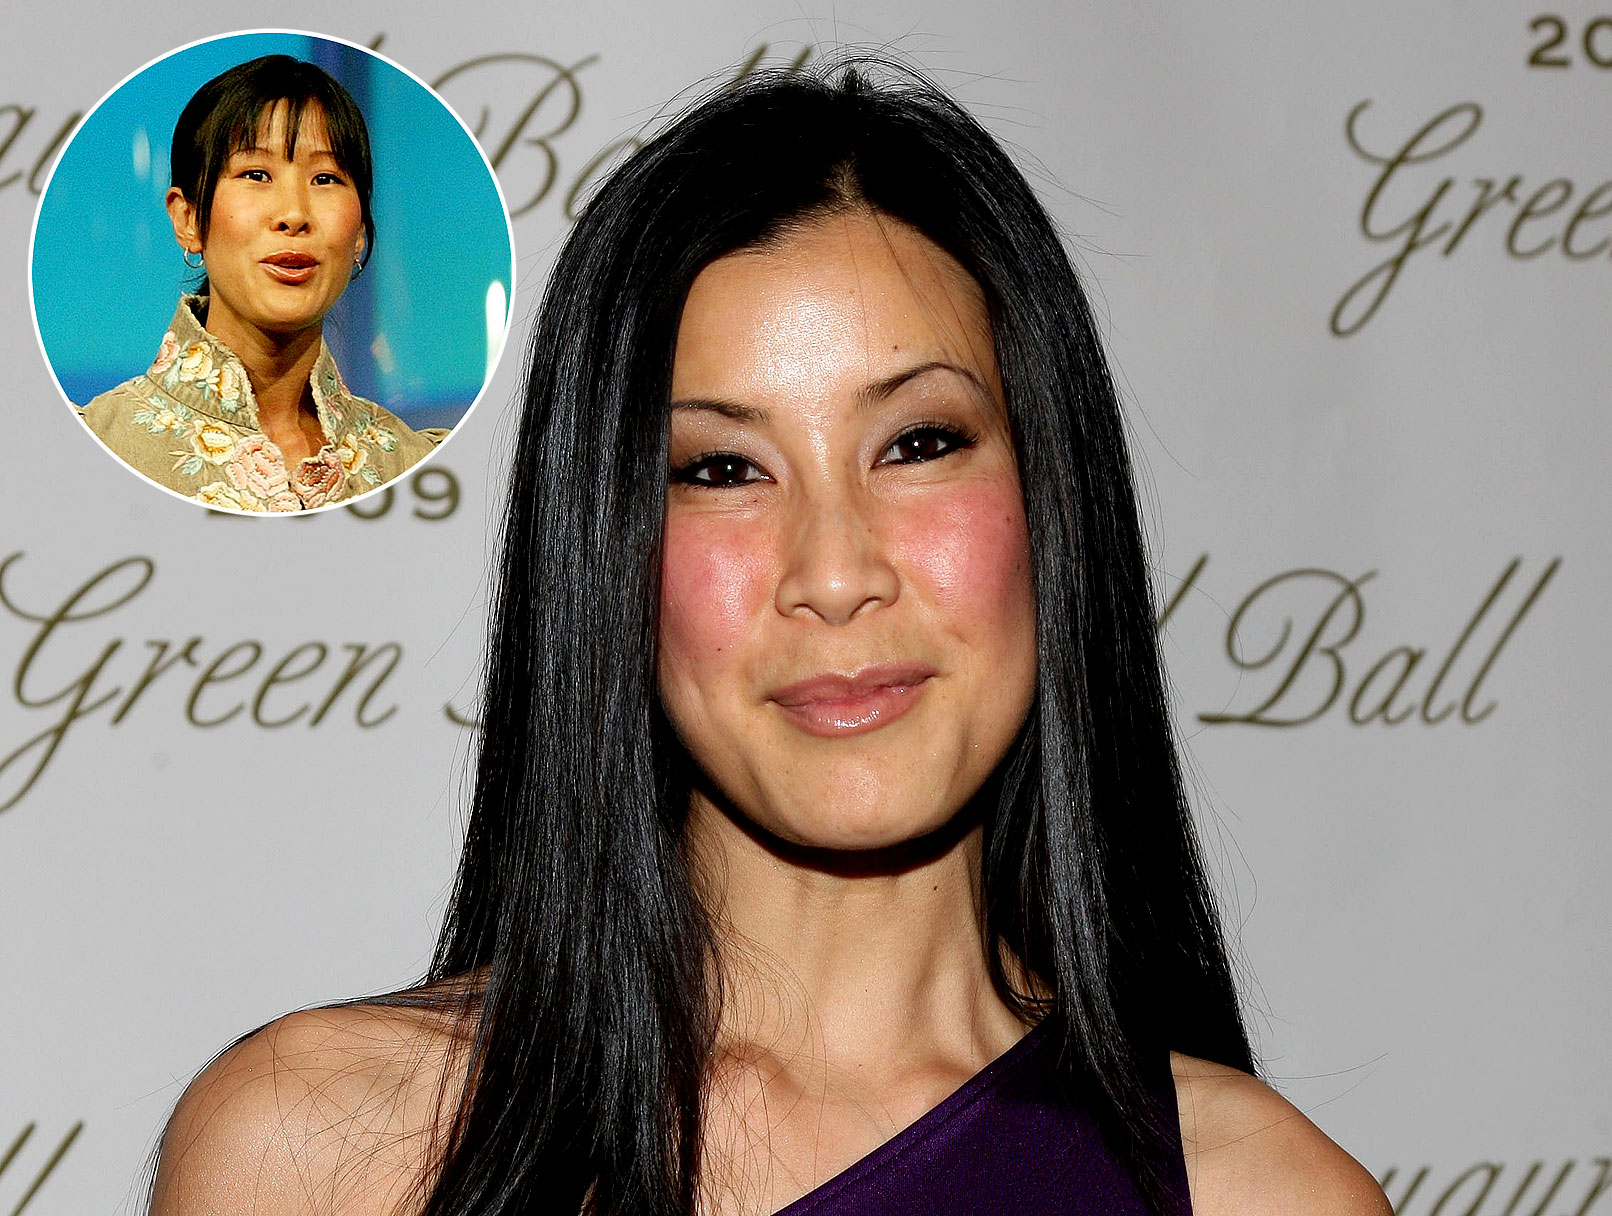 Lisa Ling's Sister Gets 12 Years of Hard Labor in North Korea